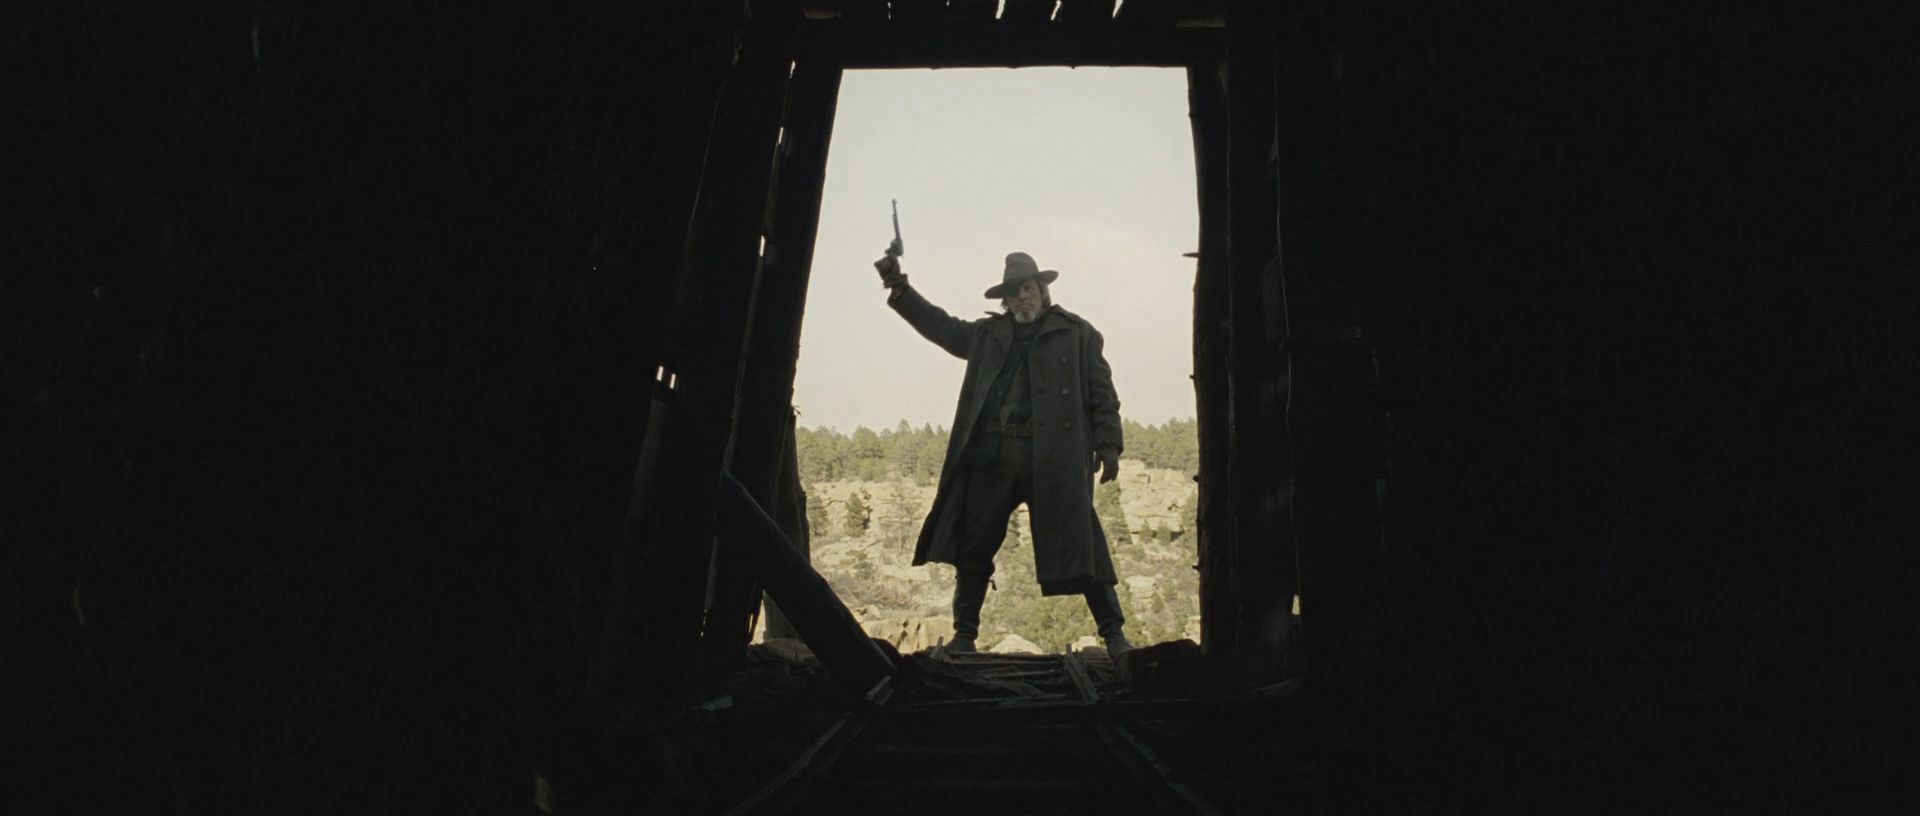 The Cinematography Of True Grit 2010 Evan E Richards True Grit Movie Roger Deakins Cinematography